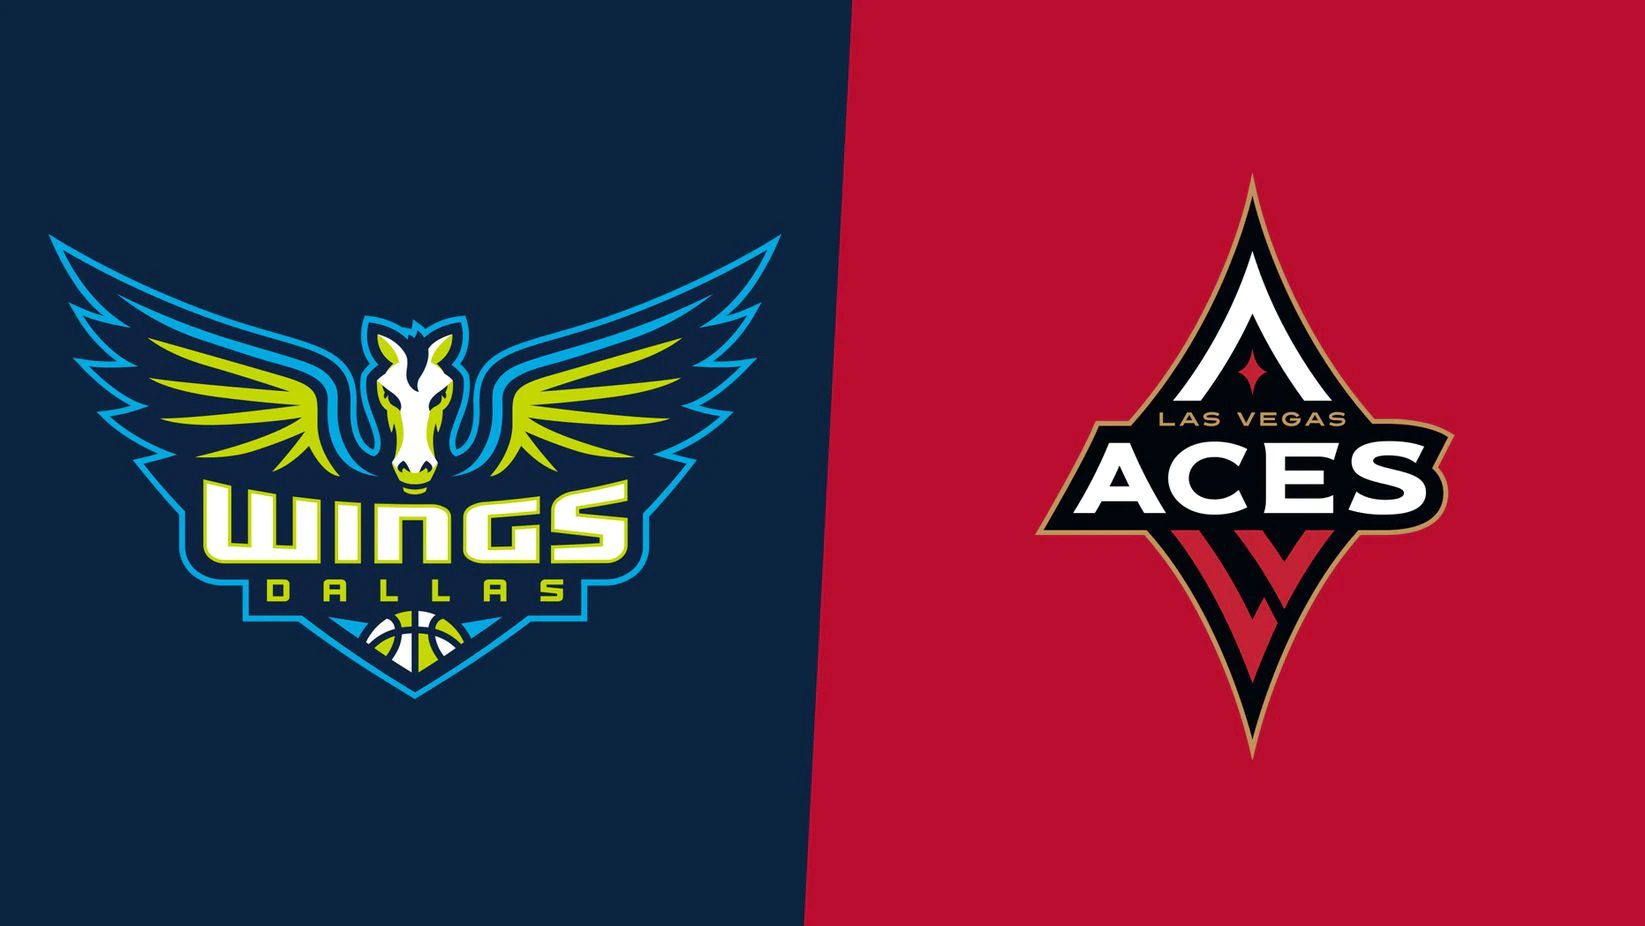 Las Vegas Aces vs Dallas Wings Prediction and Betting Odds